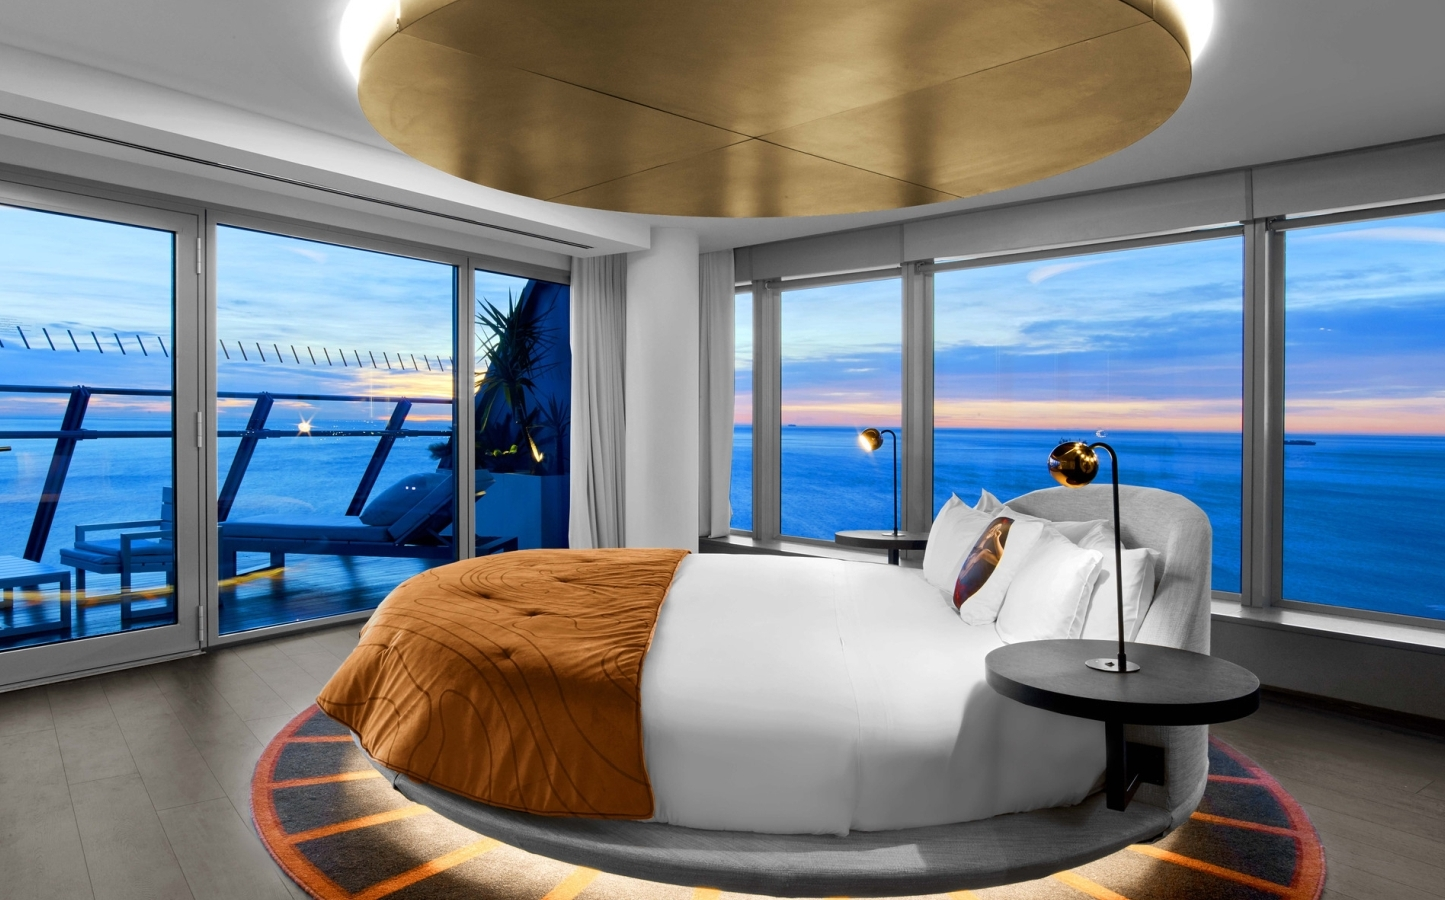 luxurious blue bedrooms great character light. Luxurious Blue Bedrooms Great Character Light. Luxury Wow Suite Bedroom At W Barcelona Light U